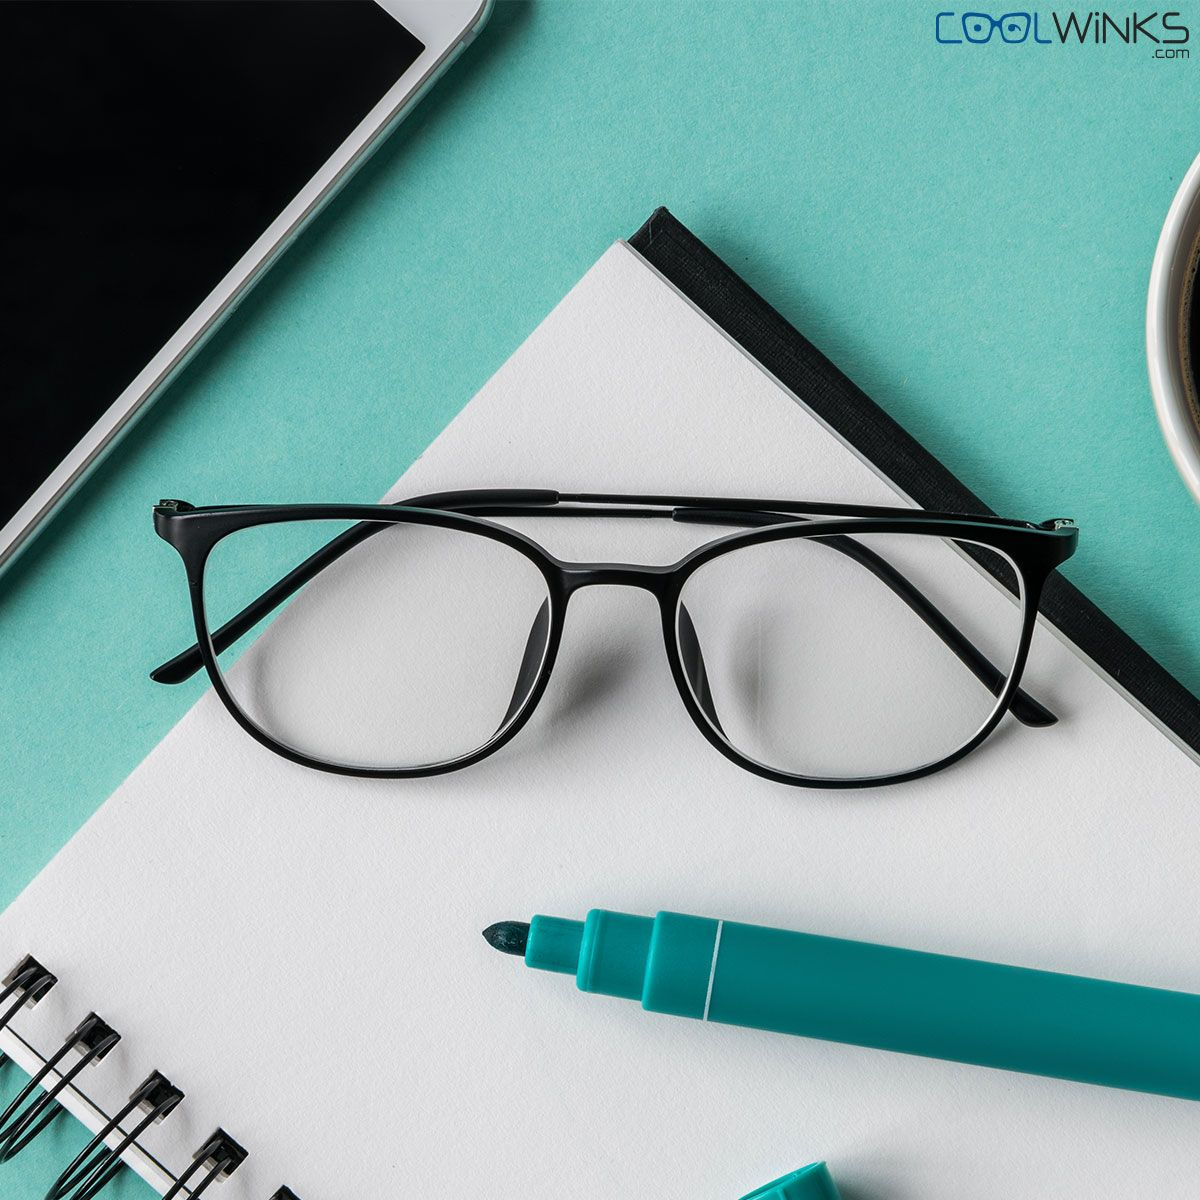 d057ad9646 UPTO 99% OFF on Eyeglass Frames  Coolwinks Sale! Did you imagine such a  price drop ever in eye frames  If not